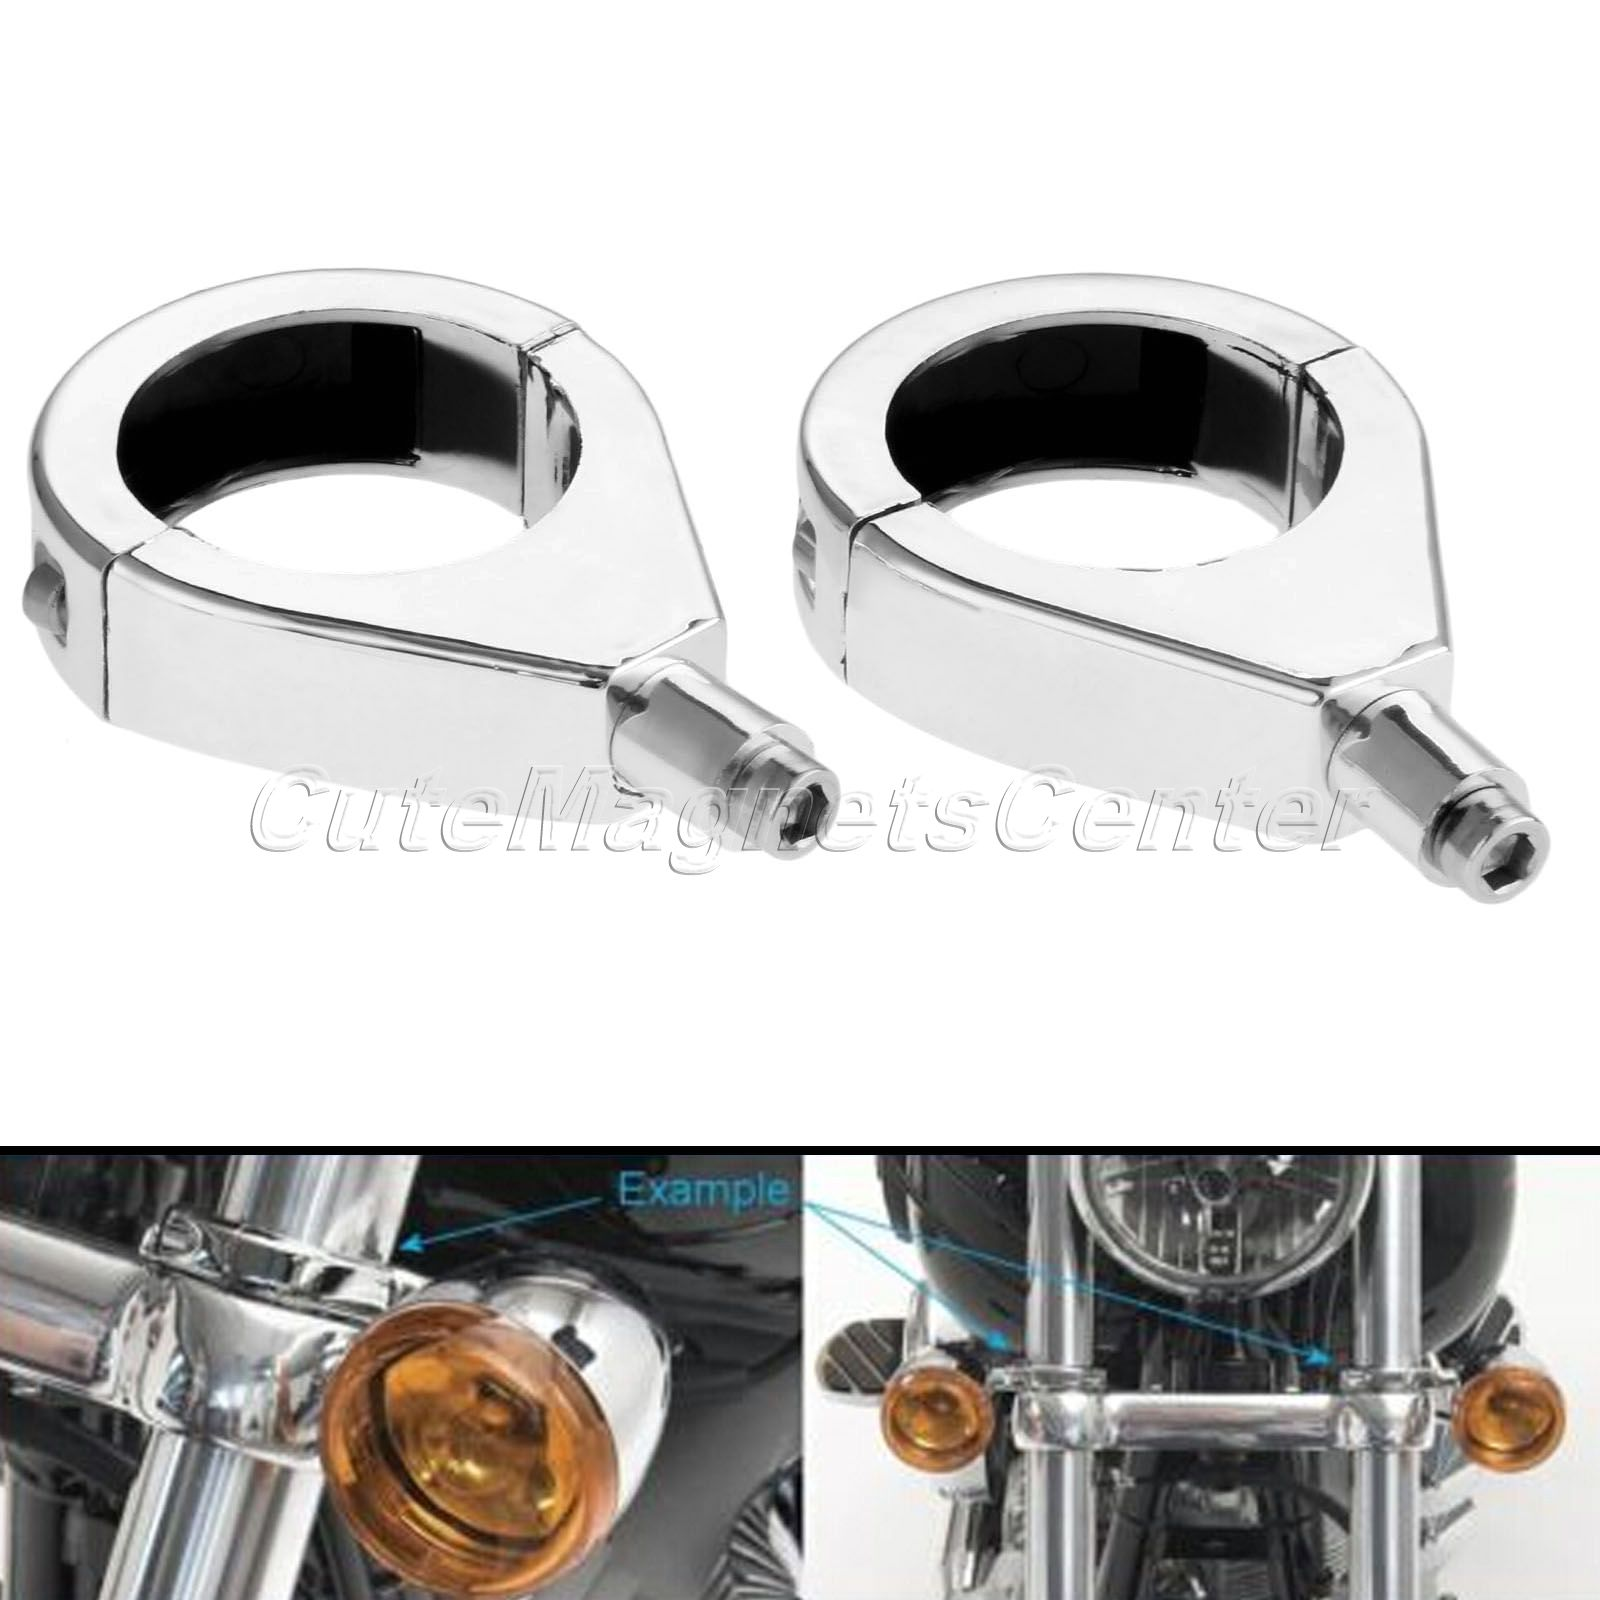 Mtsooning 2pcs 41mm Motorcycle Turn Signal Lights Indicator Fork Clamps Relocation Mount Bracket for Harley Davidson Softail 12v 3 pins adjustable frequency led flasher relay motorcycle turn signal indicator motorbike fix blinker indicator p34